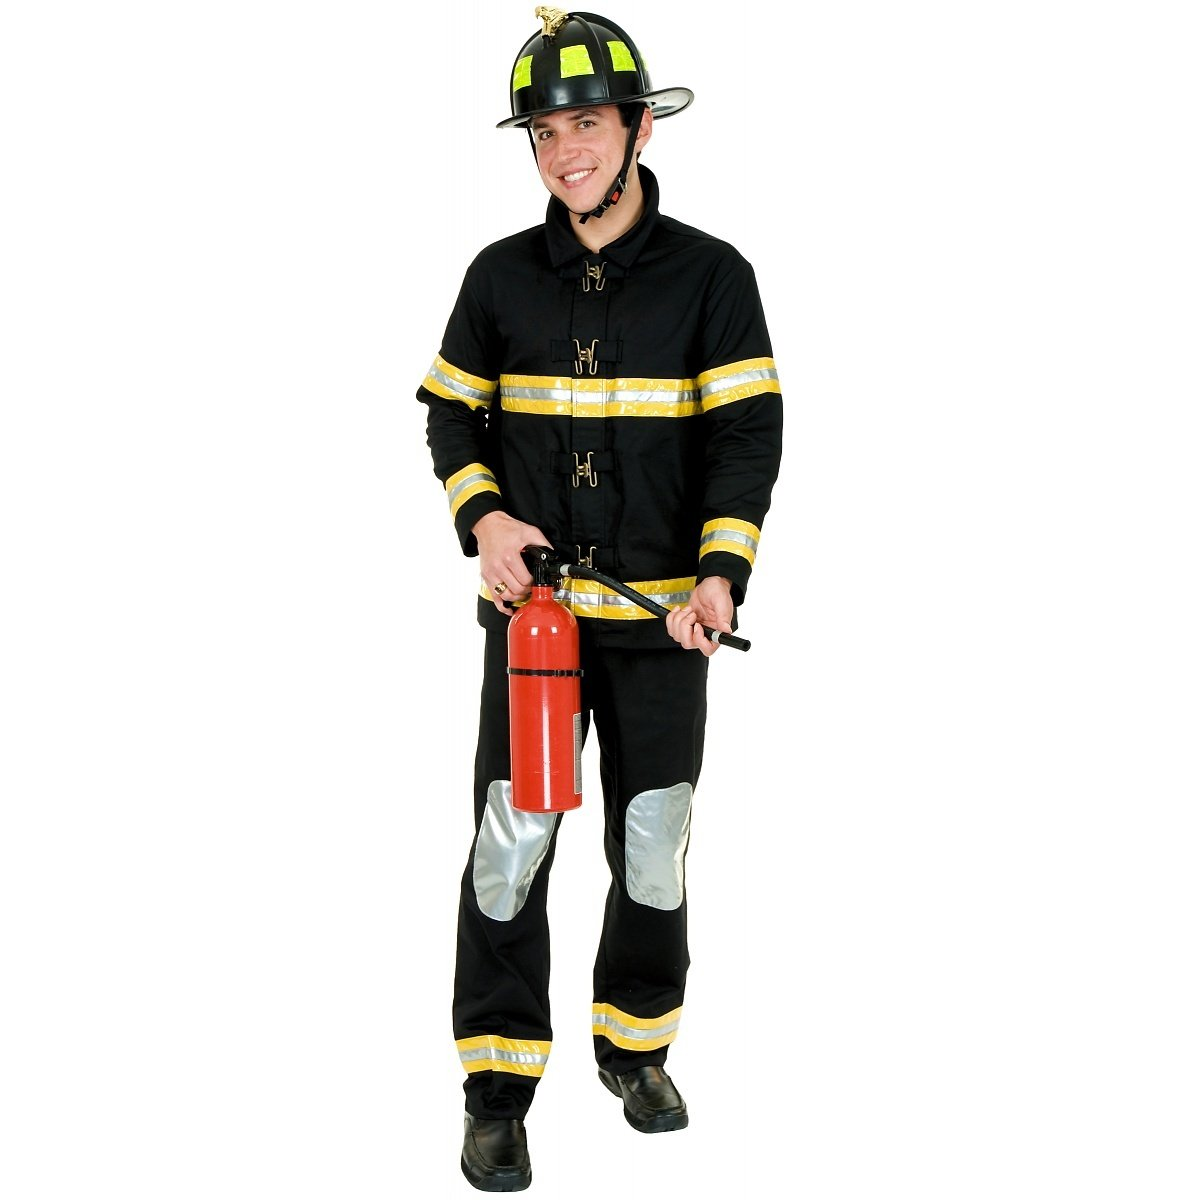 amazoncom plus size fireman costume clothing - Fireman Halloween